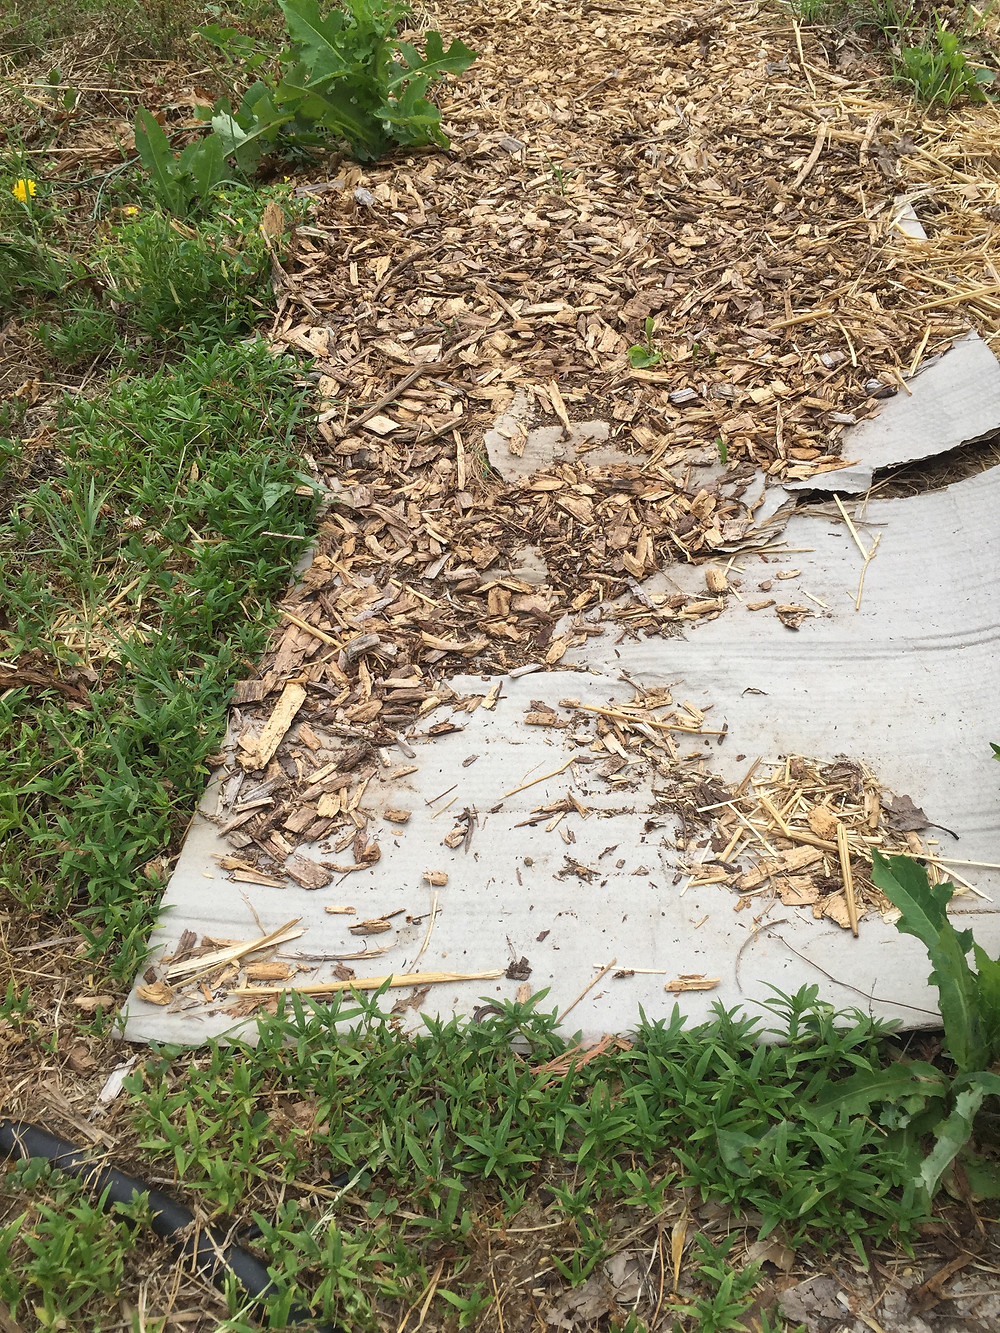 wood chips on top of cardboard surrounded by weeds